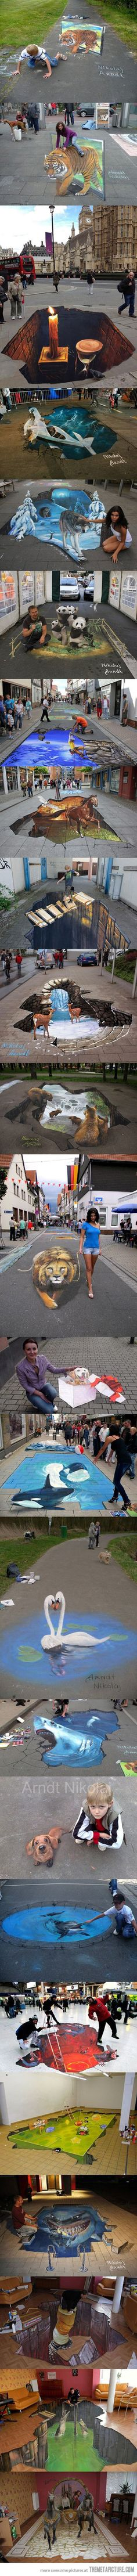 Best of 3D street art…